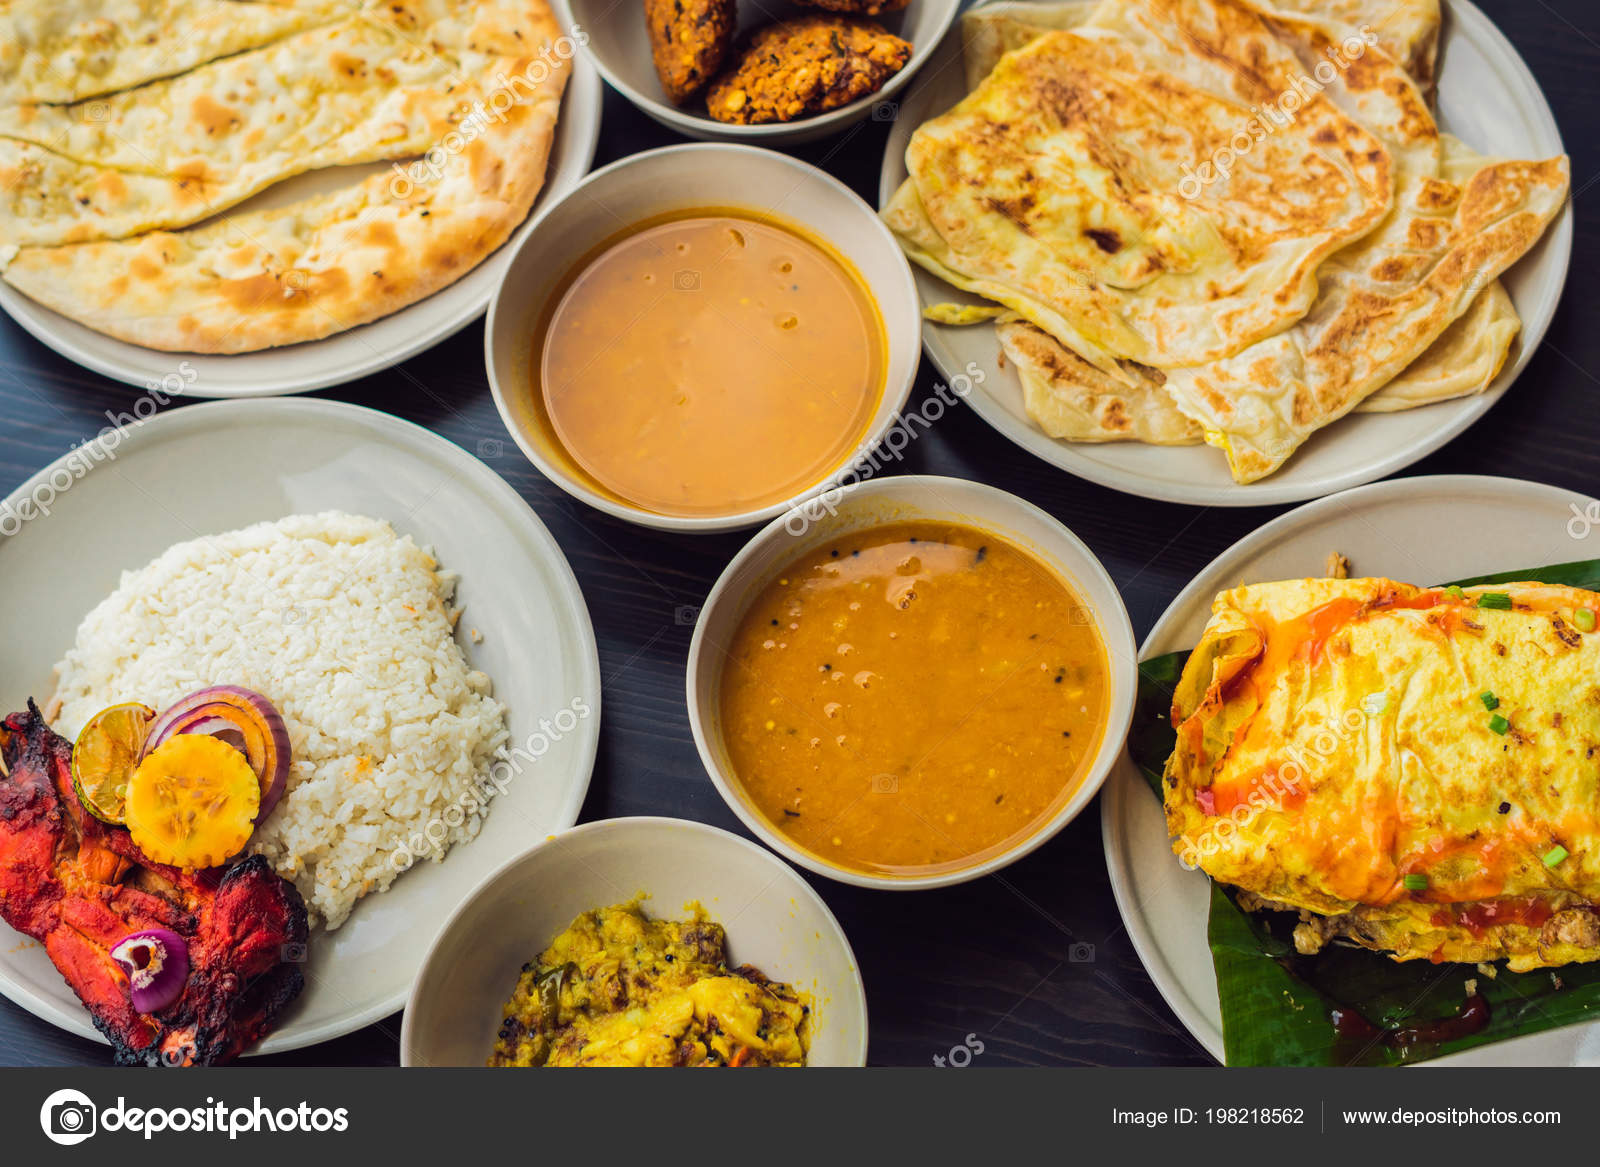 Cuisines Similar To Indian Assorted Indian Food Dark Wooden Background Dishes Appetizers